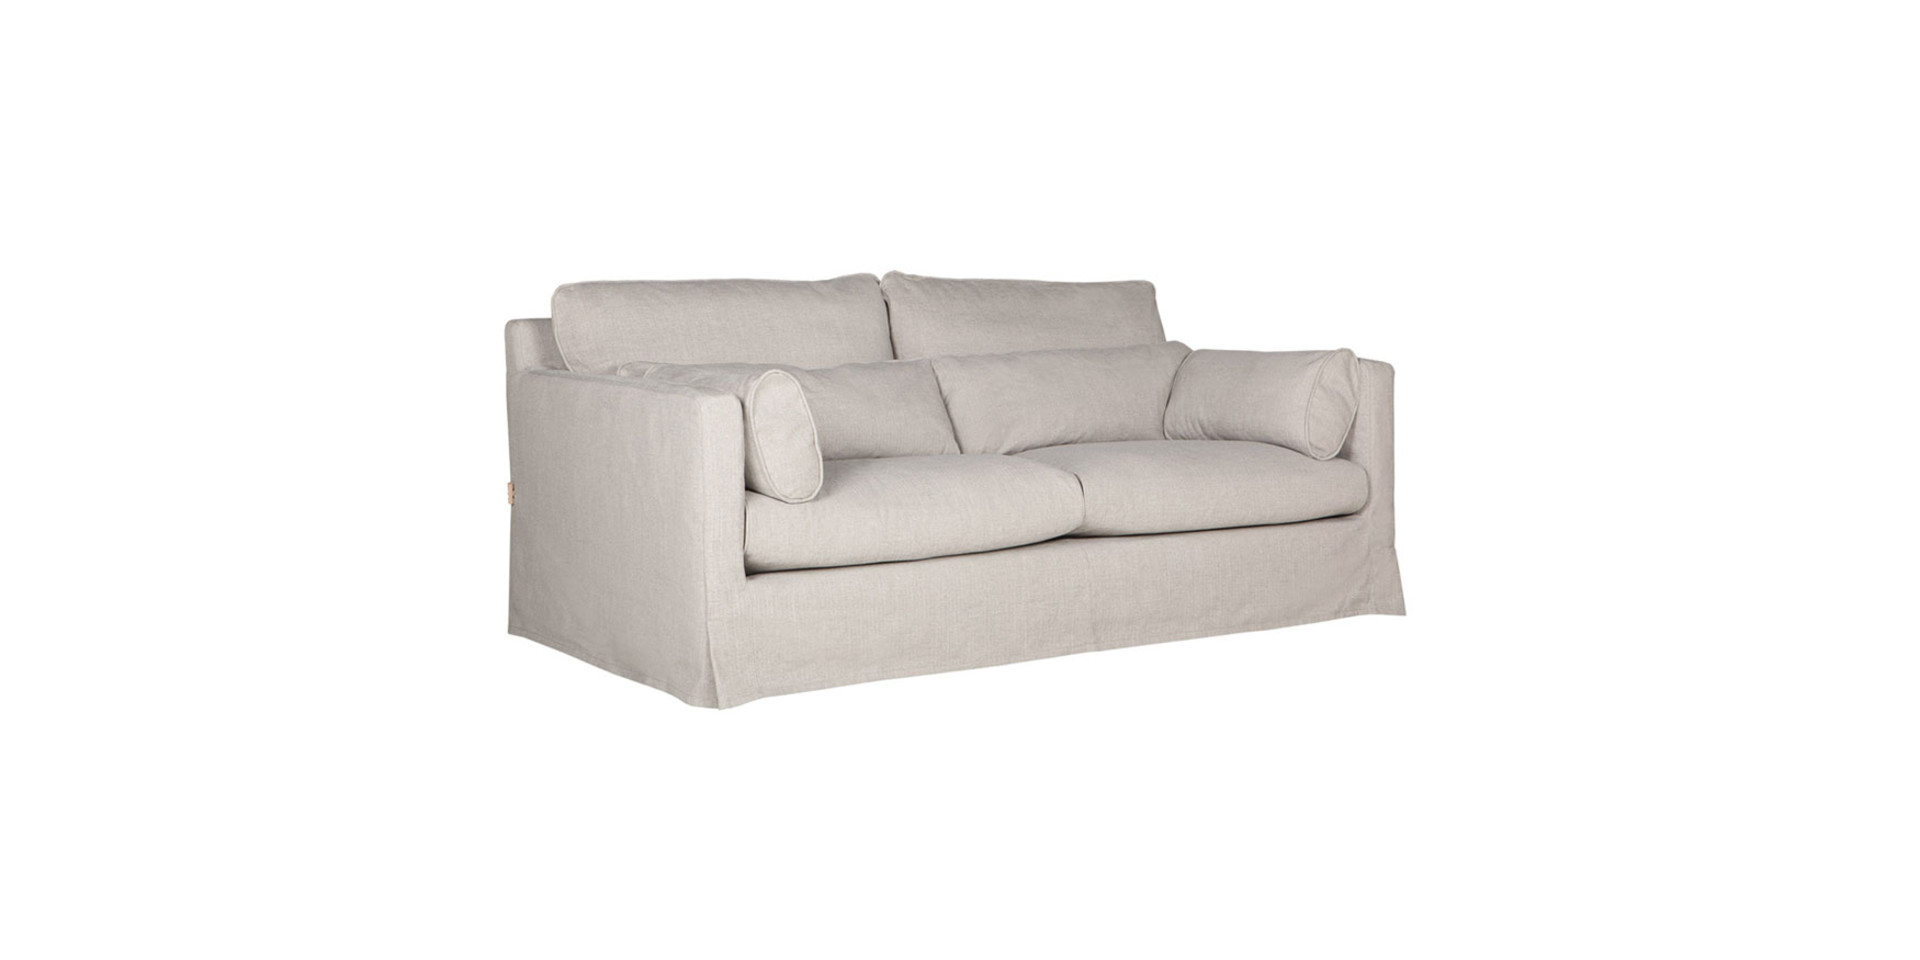 sits-sara-canape-2seater_flossy6_light_grey_2